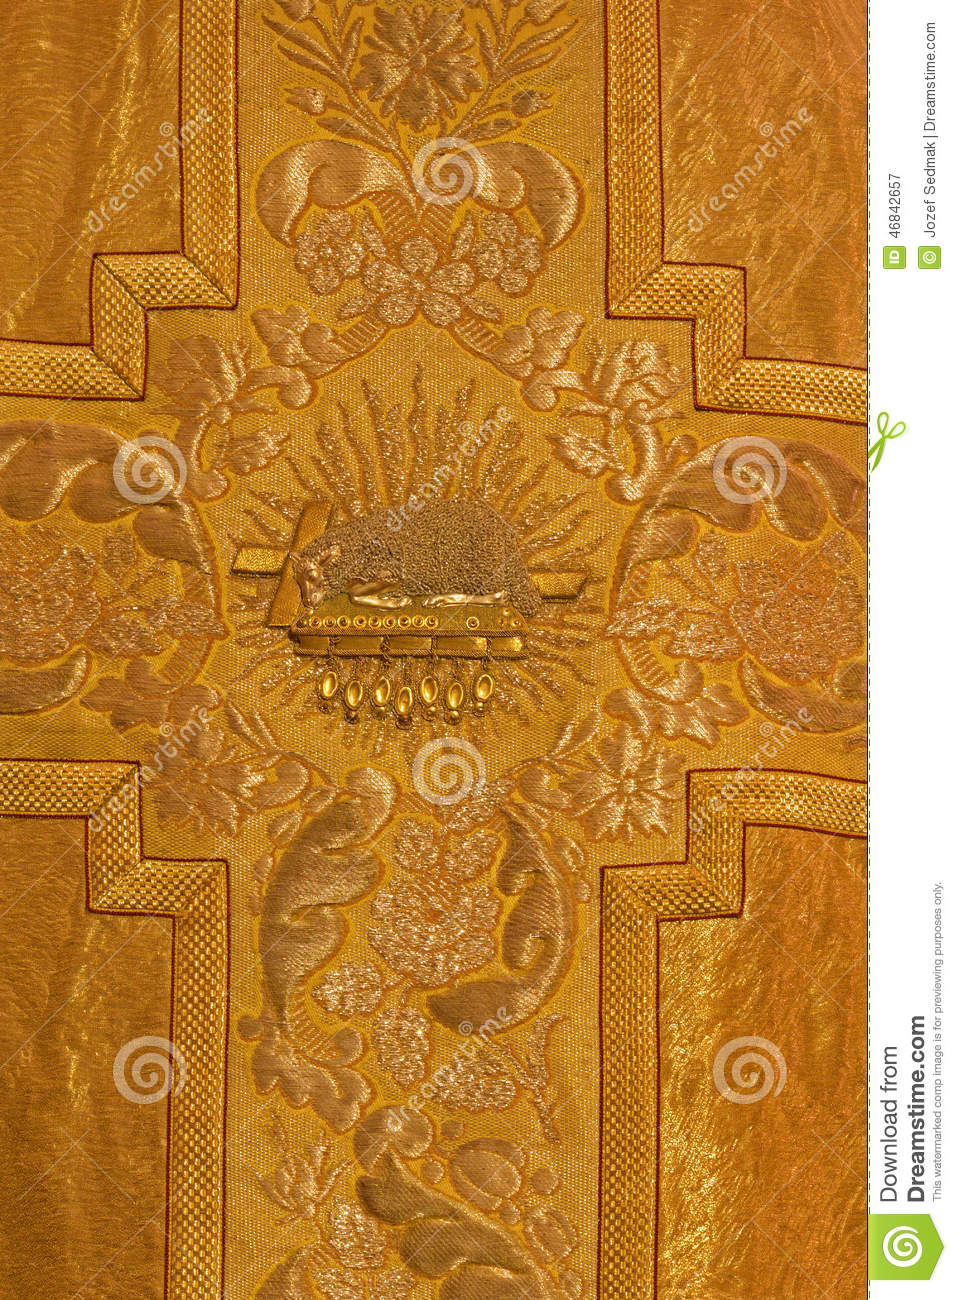 Bratislava the needelwork of lamb on the book of life as the bratislava the needelwork of lamb on the book of life as the symbol of jesus christ offer on the catholic vestment biocorpaavc Gallery